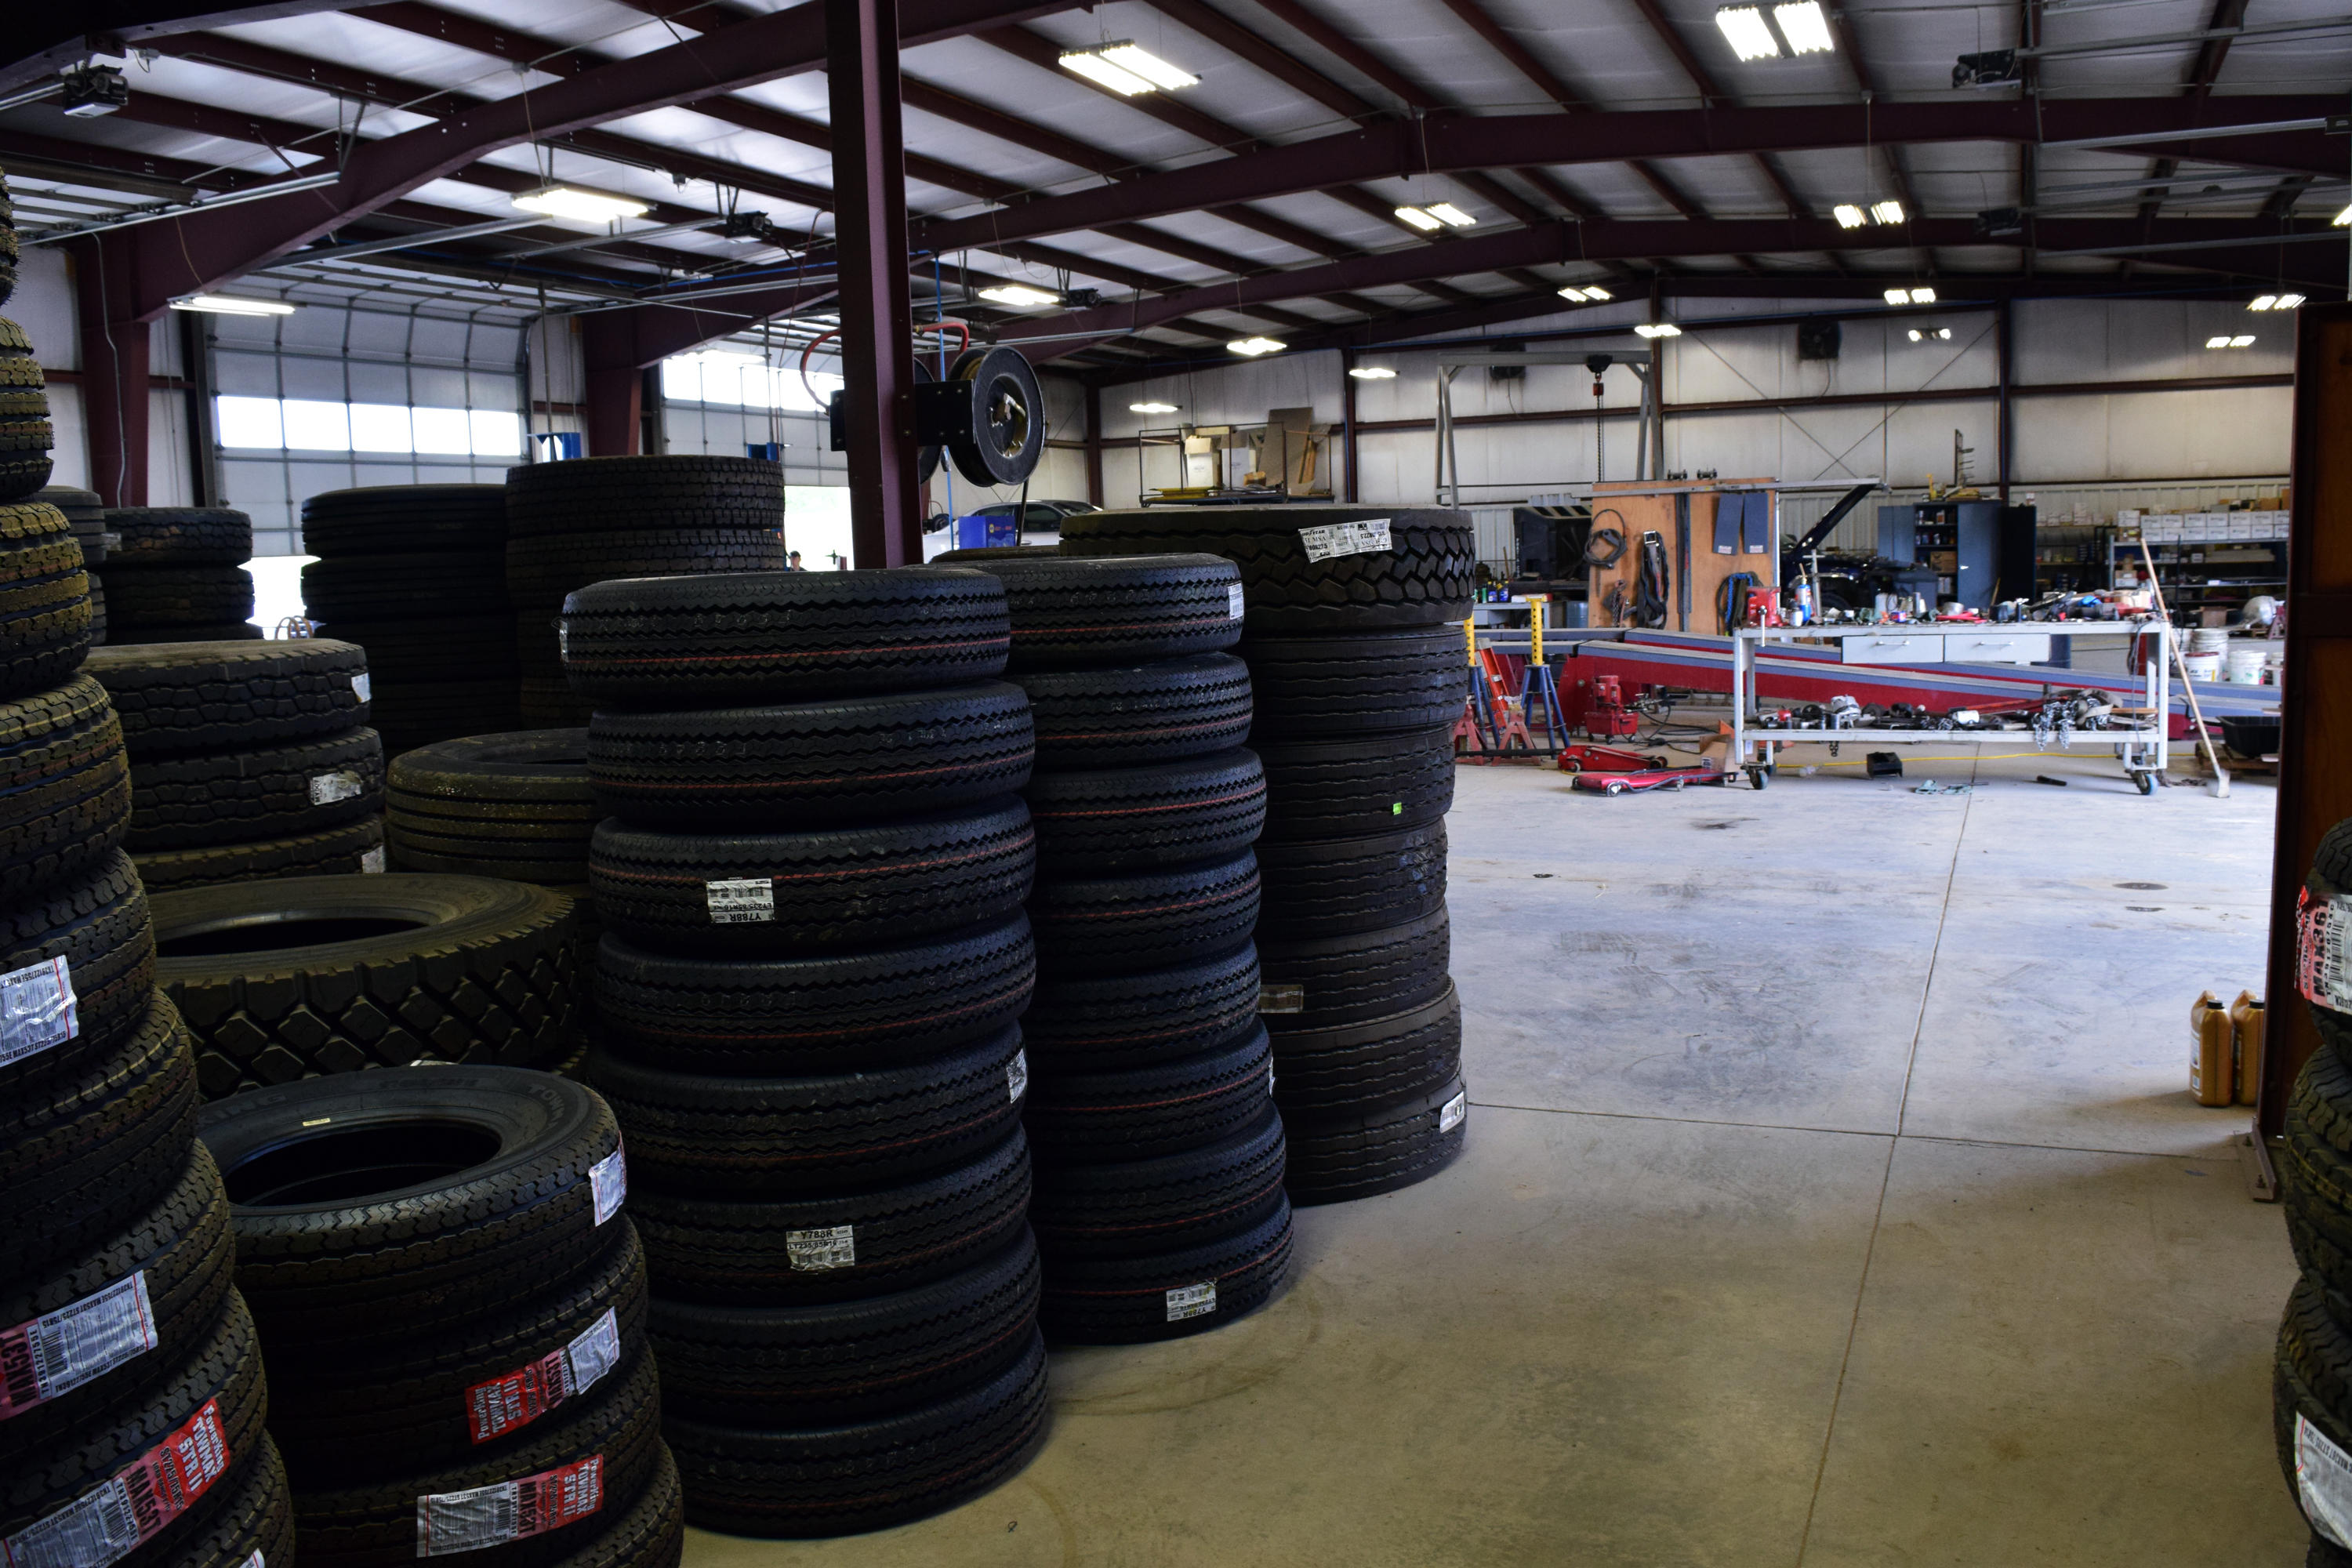 I went to a Firestone service center on in Jackson, MI for a oil change and a set of 4 new tires. When the car was in the bay, the Manager named KIM, came out and asked me if I knew where.